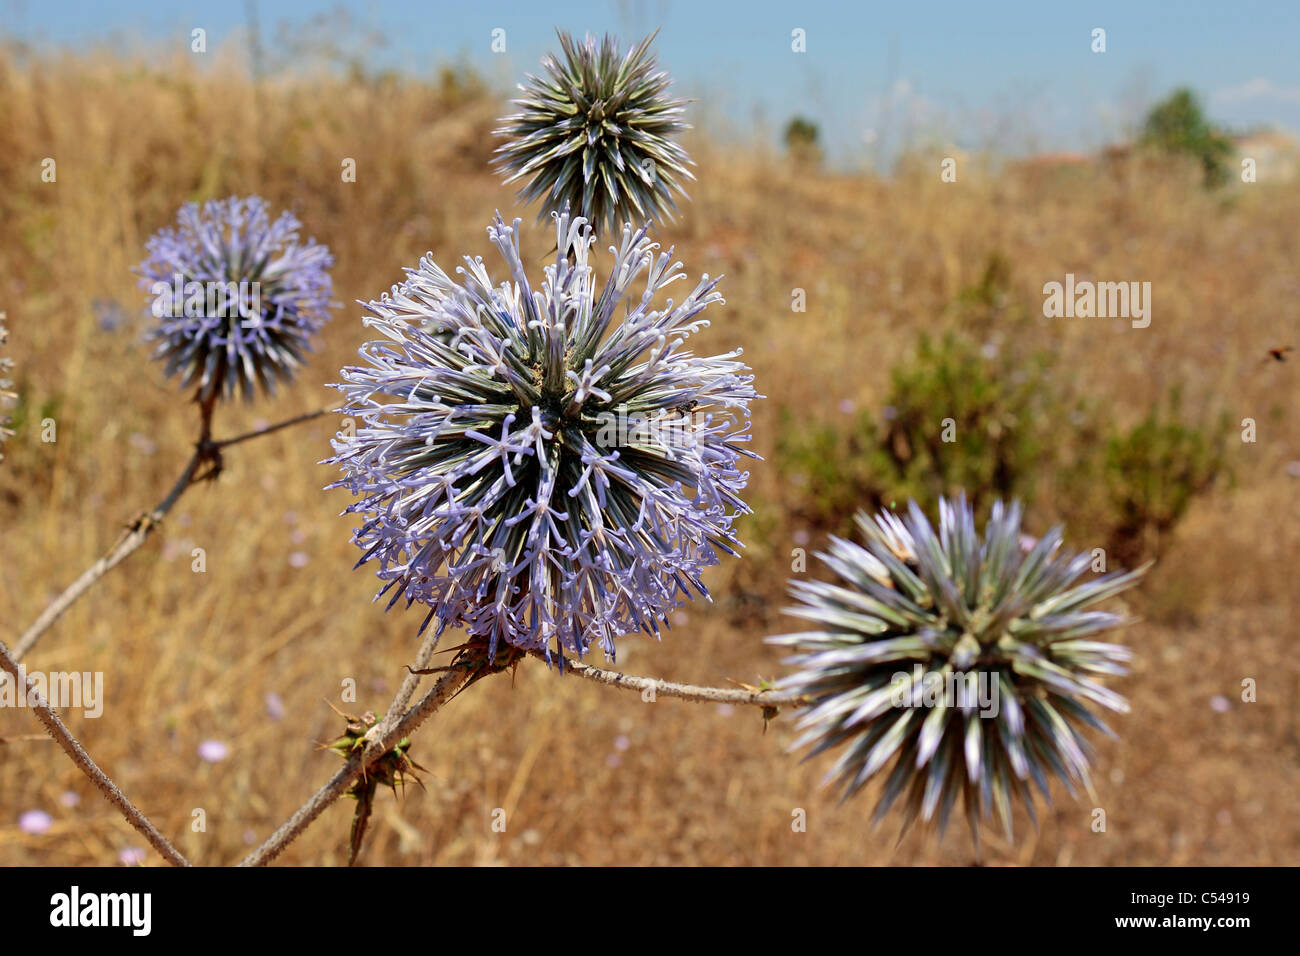 Echinops sphaerocephalus globe thistle on open ground in Side, Turkey - Stock Image